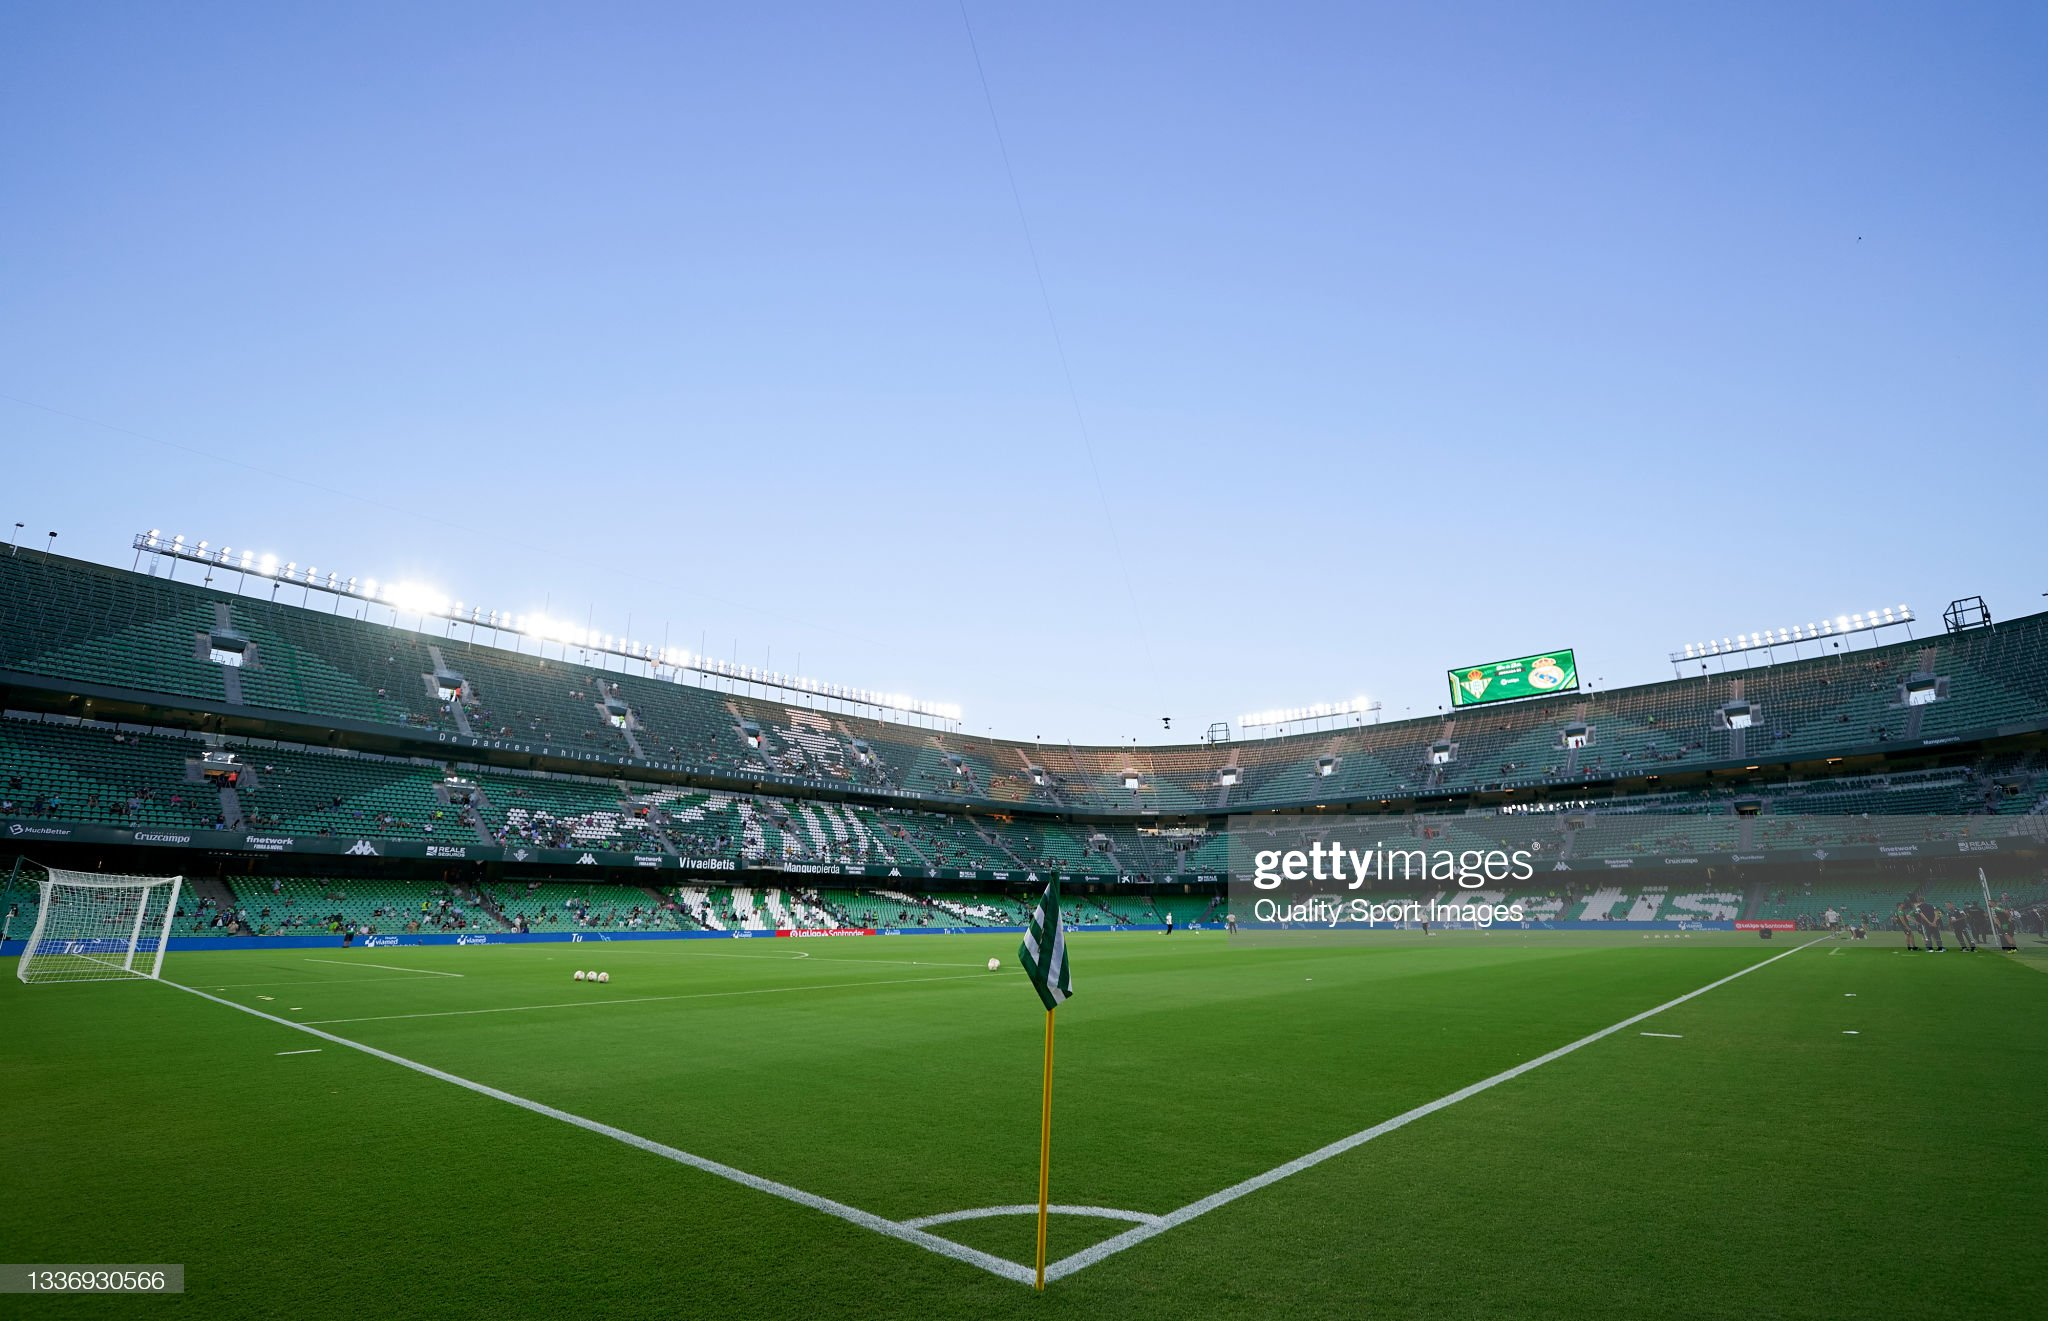 Real Betis vs Bayer Leverkusen Preview, prediction and odds